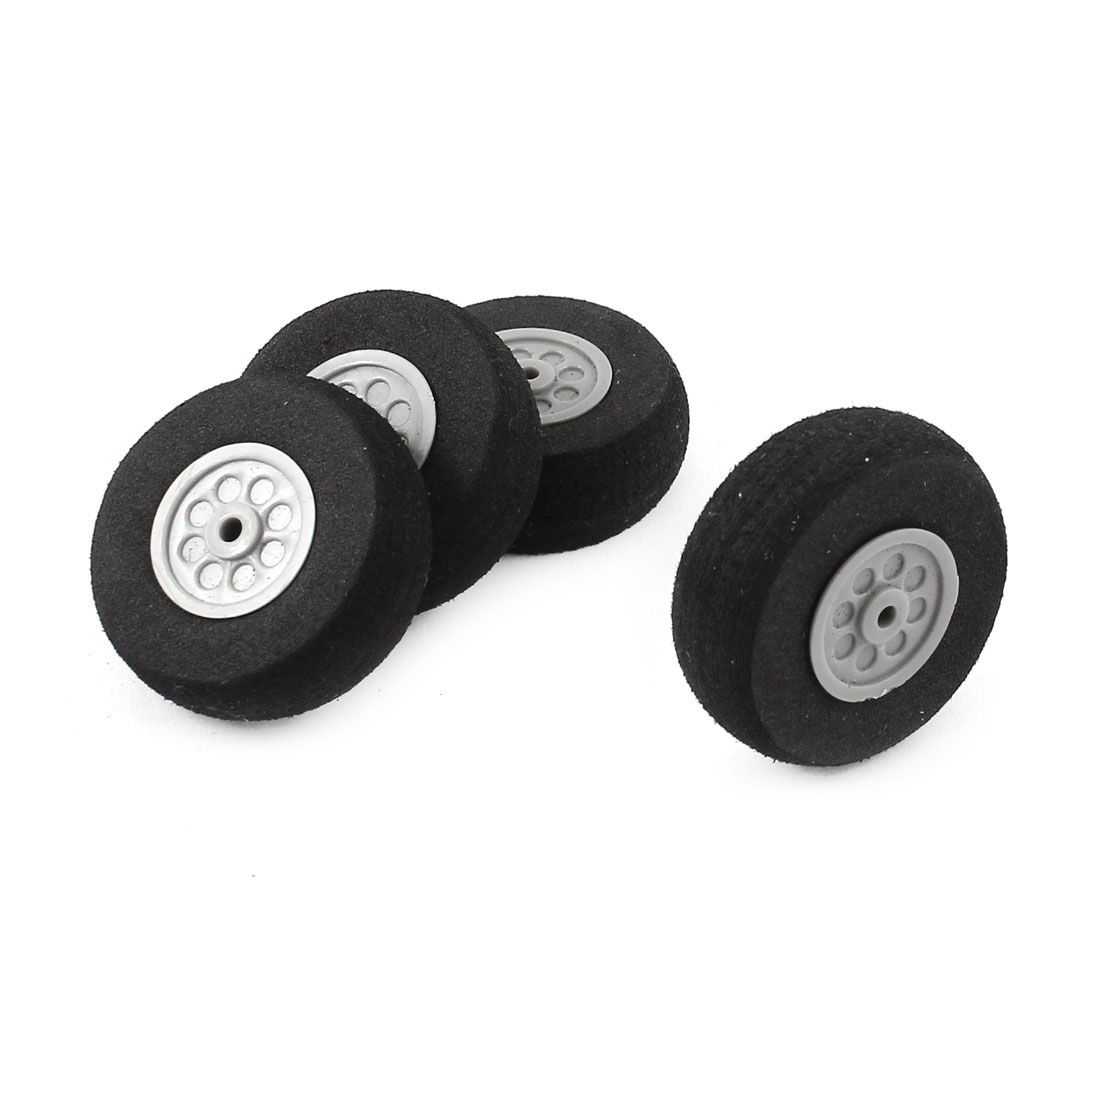 4 Pcs RC Electric Toys Airplane Sponge Spoke Wheel D30mm H10mm d2mm